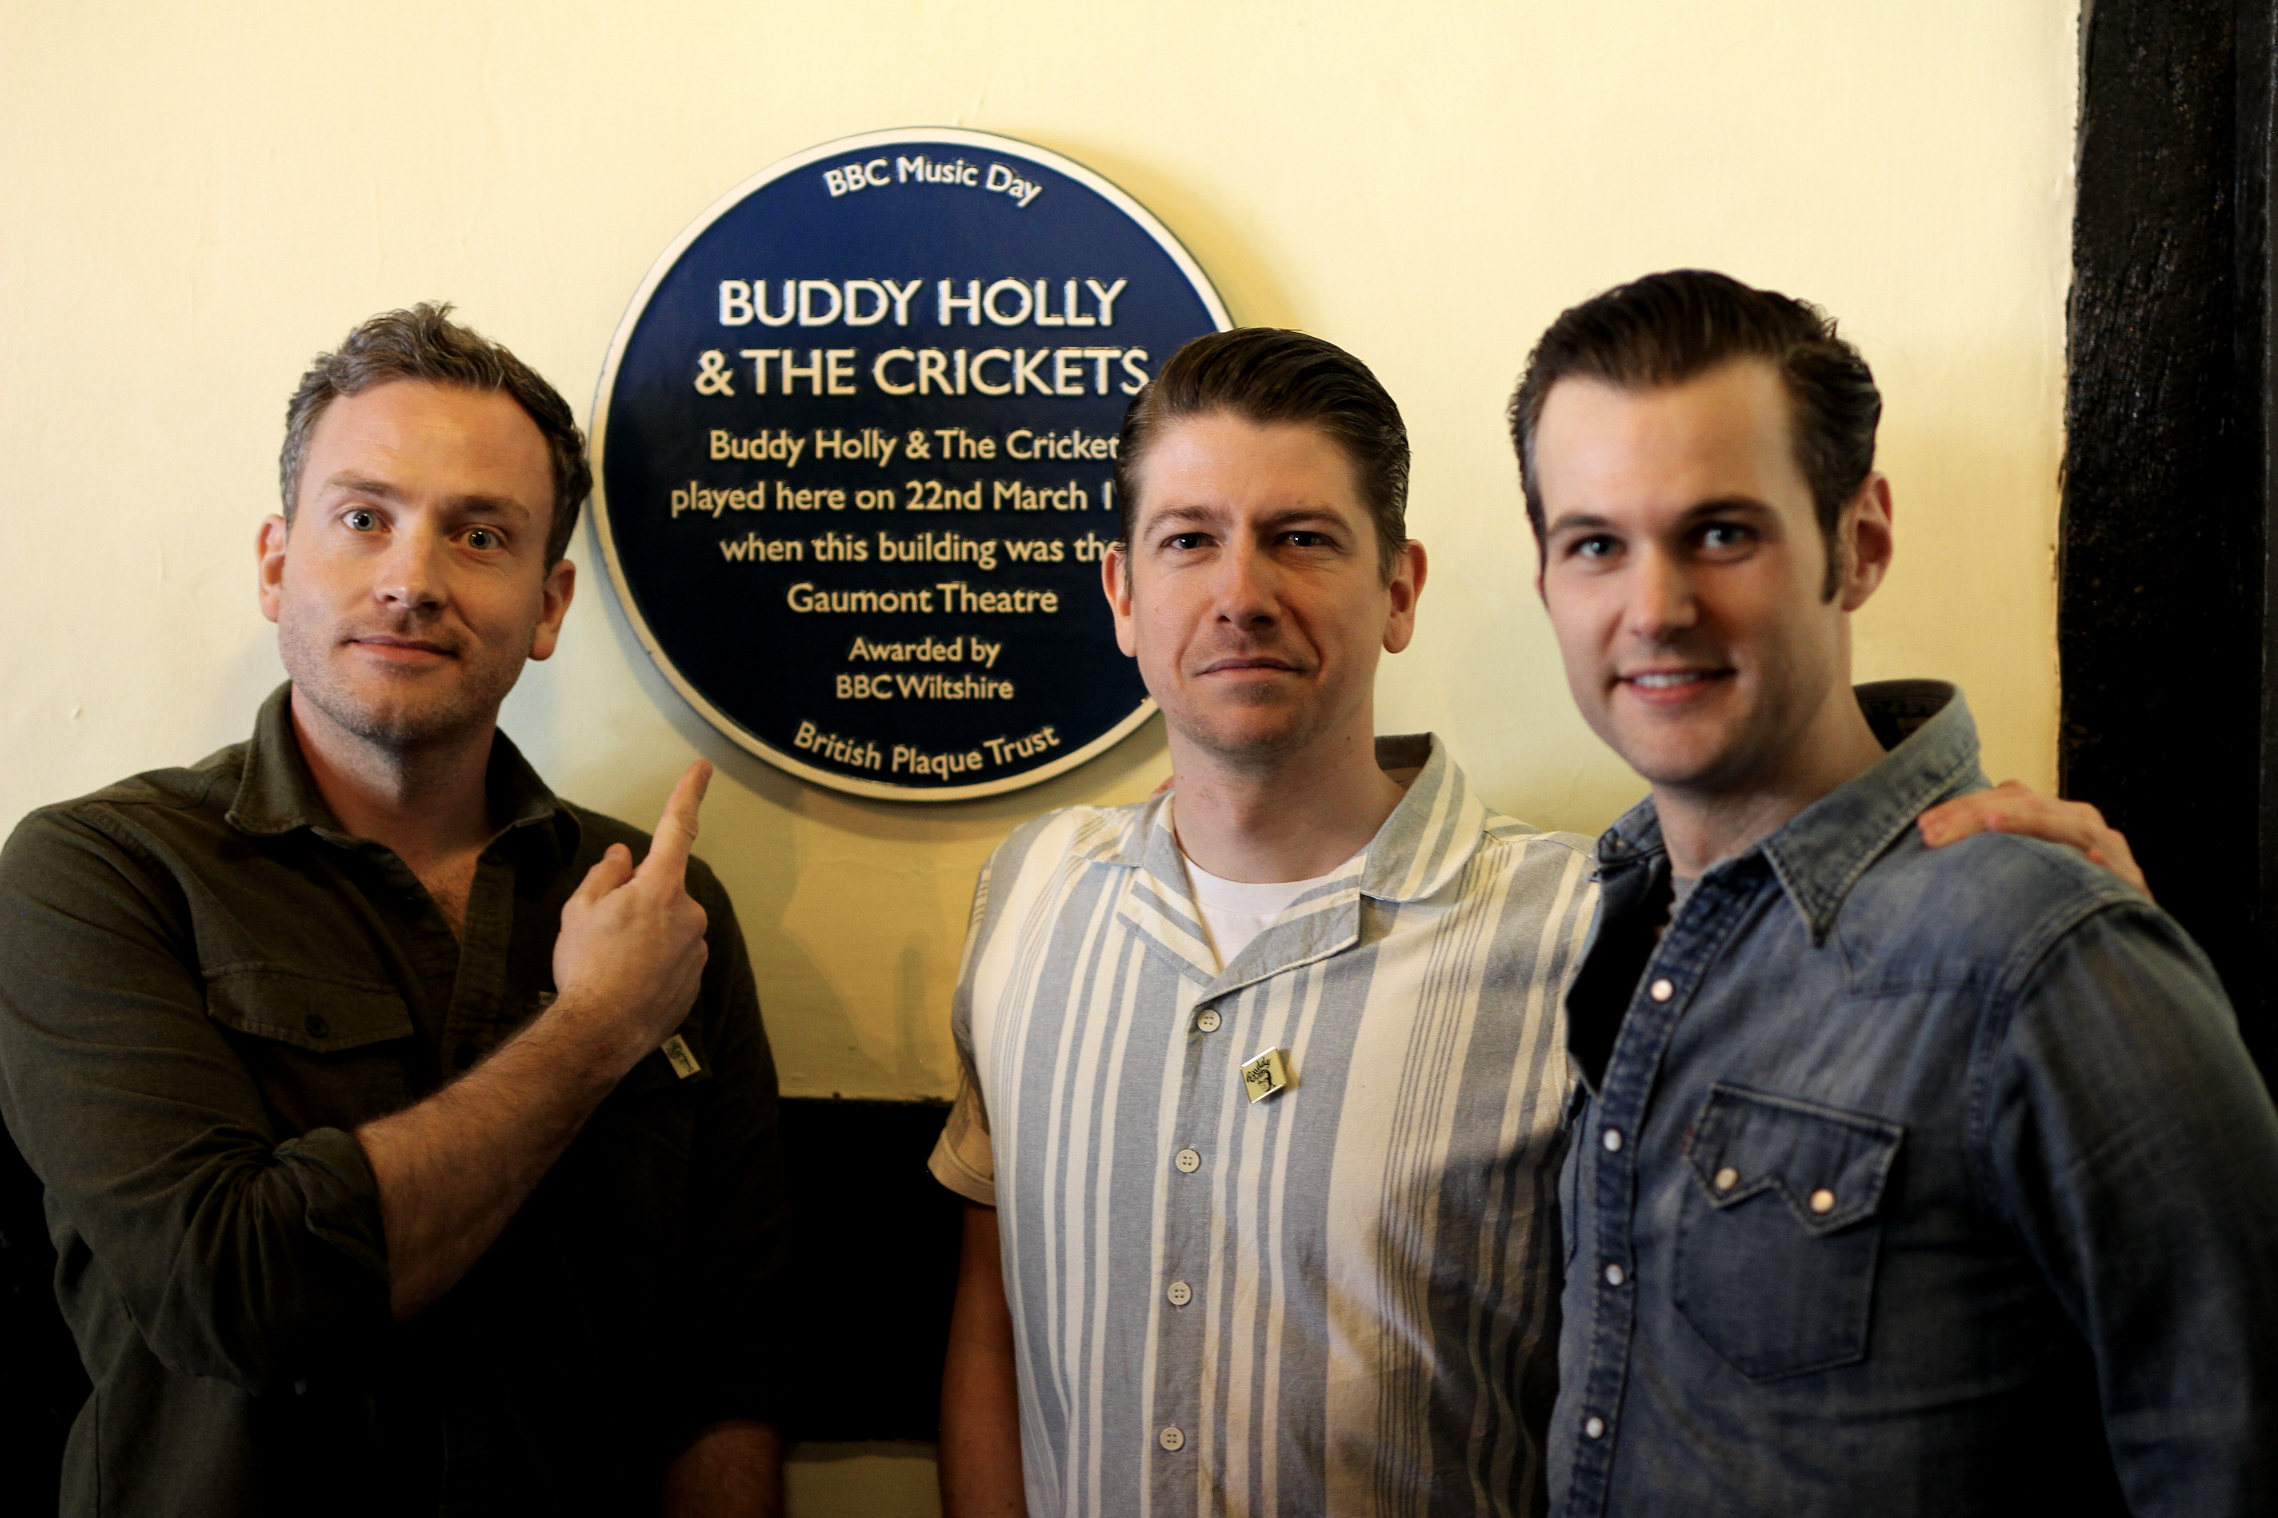 The Bluejays Buddy Holly Blue Plaque Salisbury Gaumont Theatre